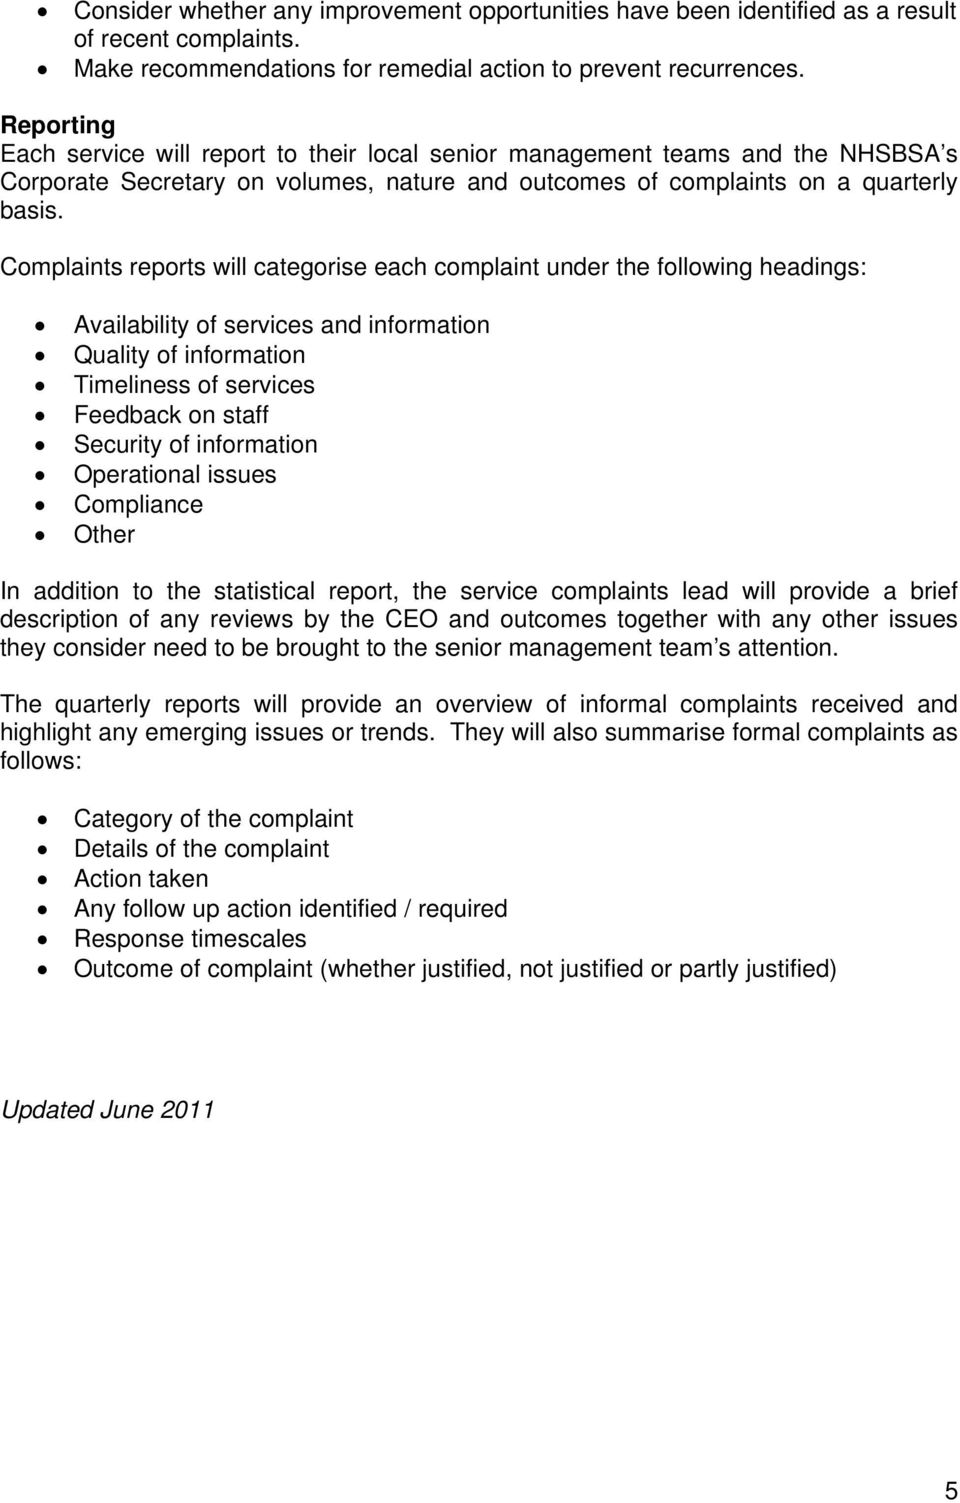 Complaints reports will categorise each complaint under the following headings: Availability of services and information Quality of information Timeliness of services Feedback on staff Security of